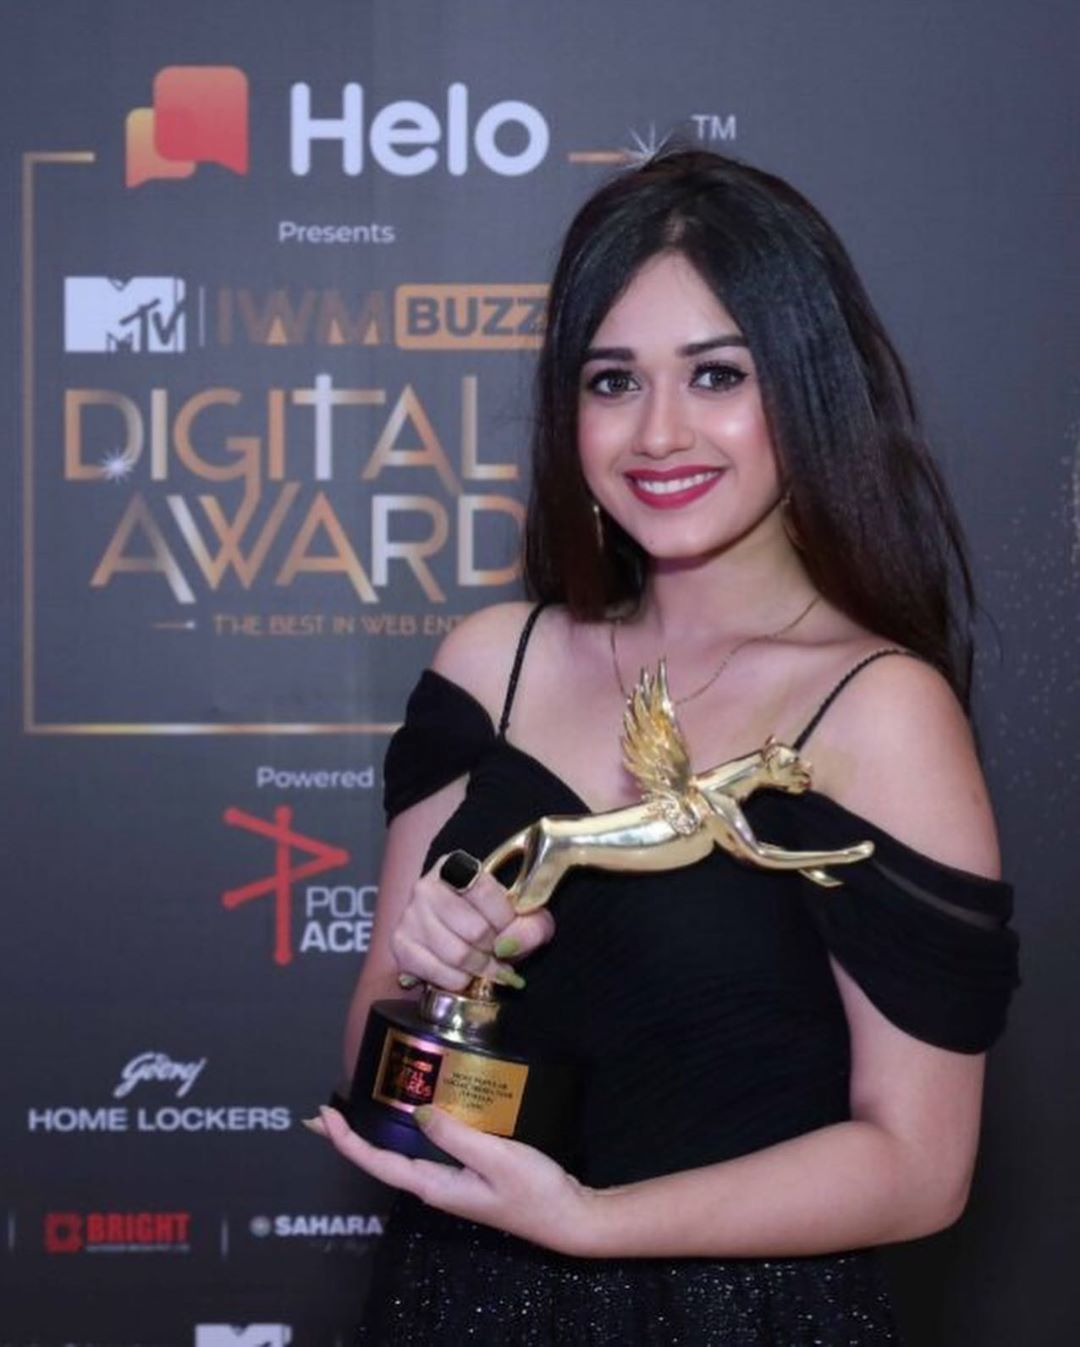 Jannat won the title of Most Popular Social Media Star.